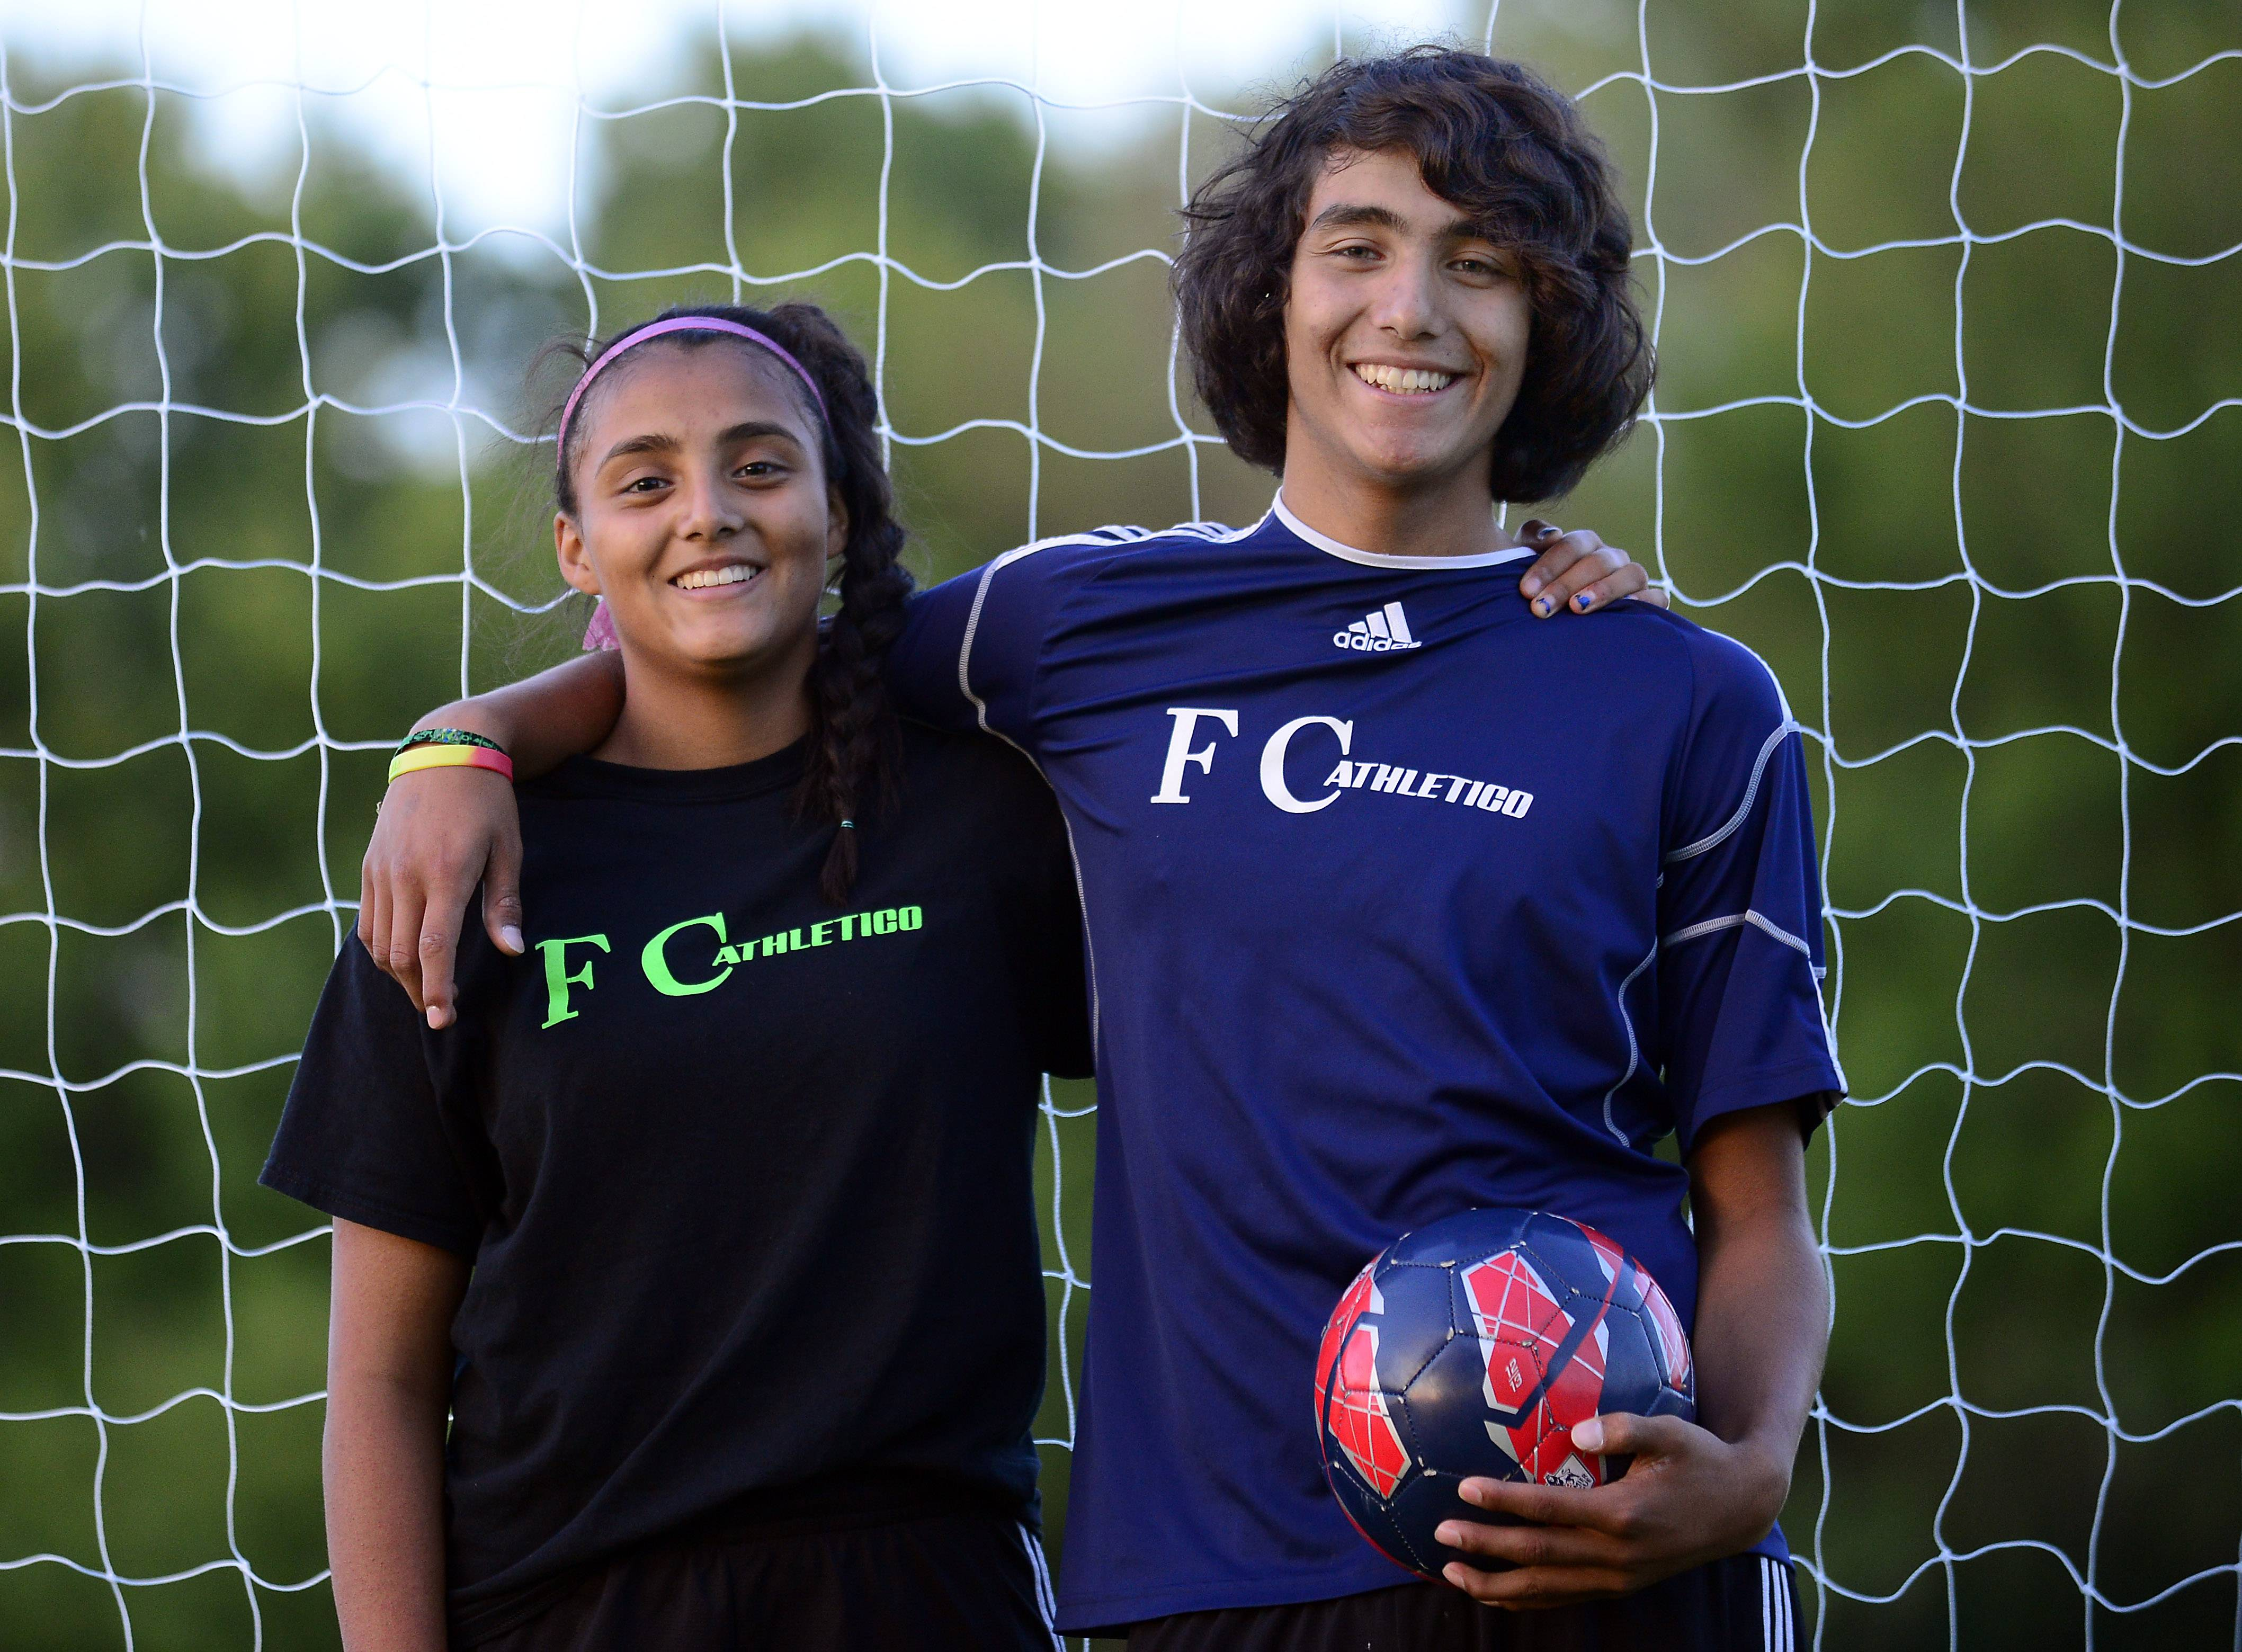 Wheeling siblings Alondra, 14, and Luis, 15, Arreola, are soccer phenoms who hope one day to play in the World Cup. For now, they're fielding offers from some top-level prep programs and, in Luis' case, hearing interest from professional soccer clubs abroad.